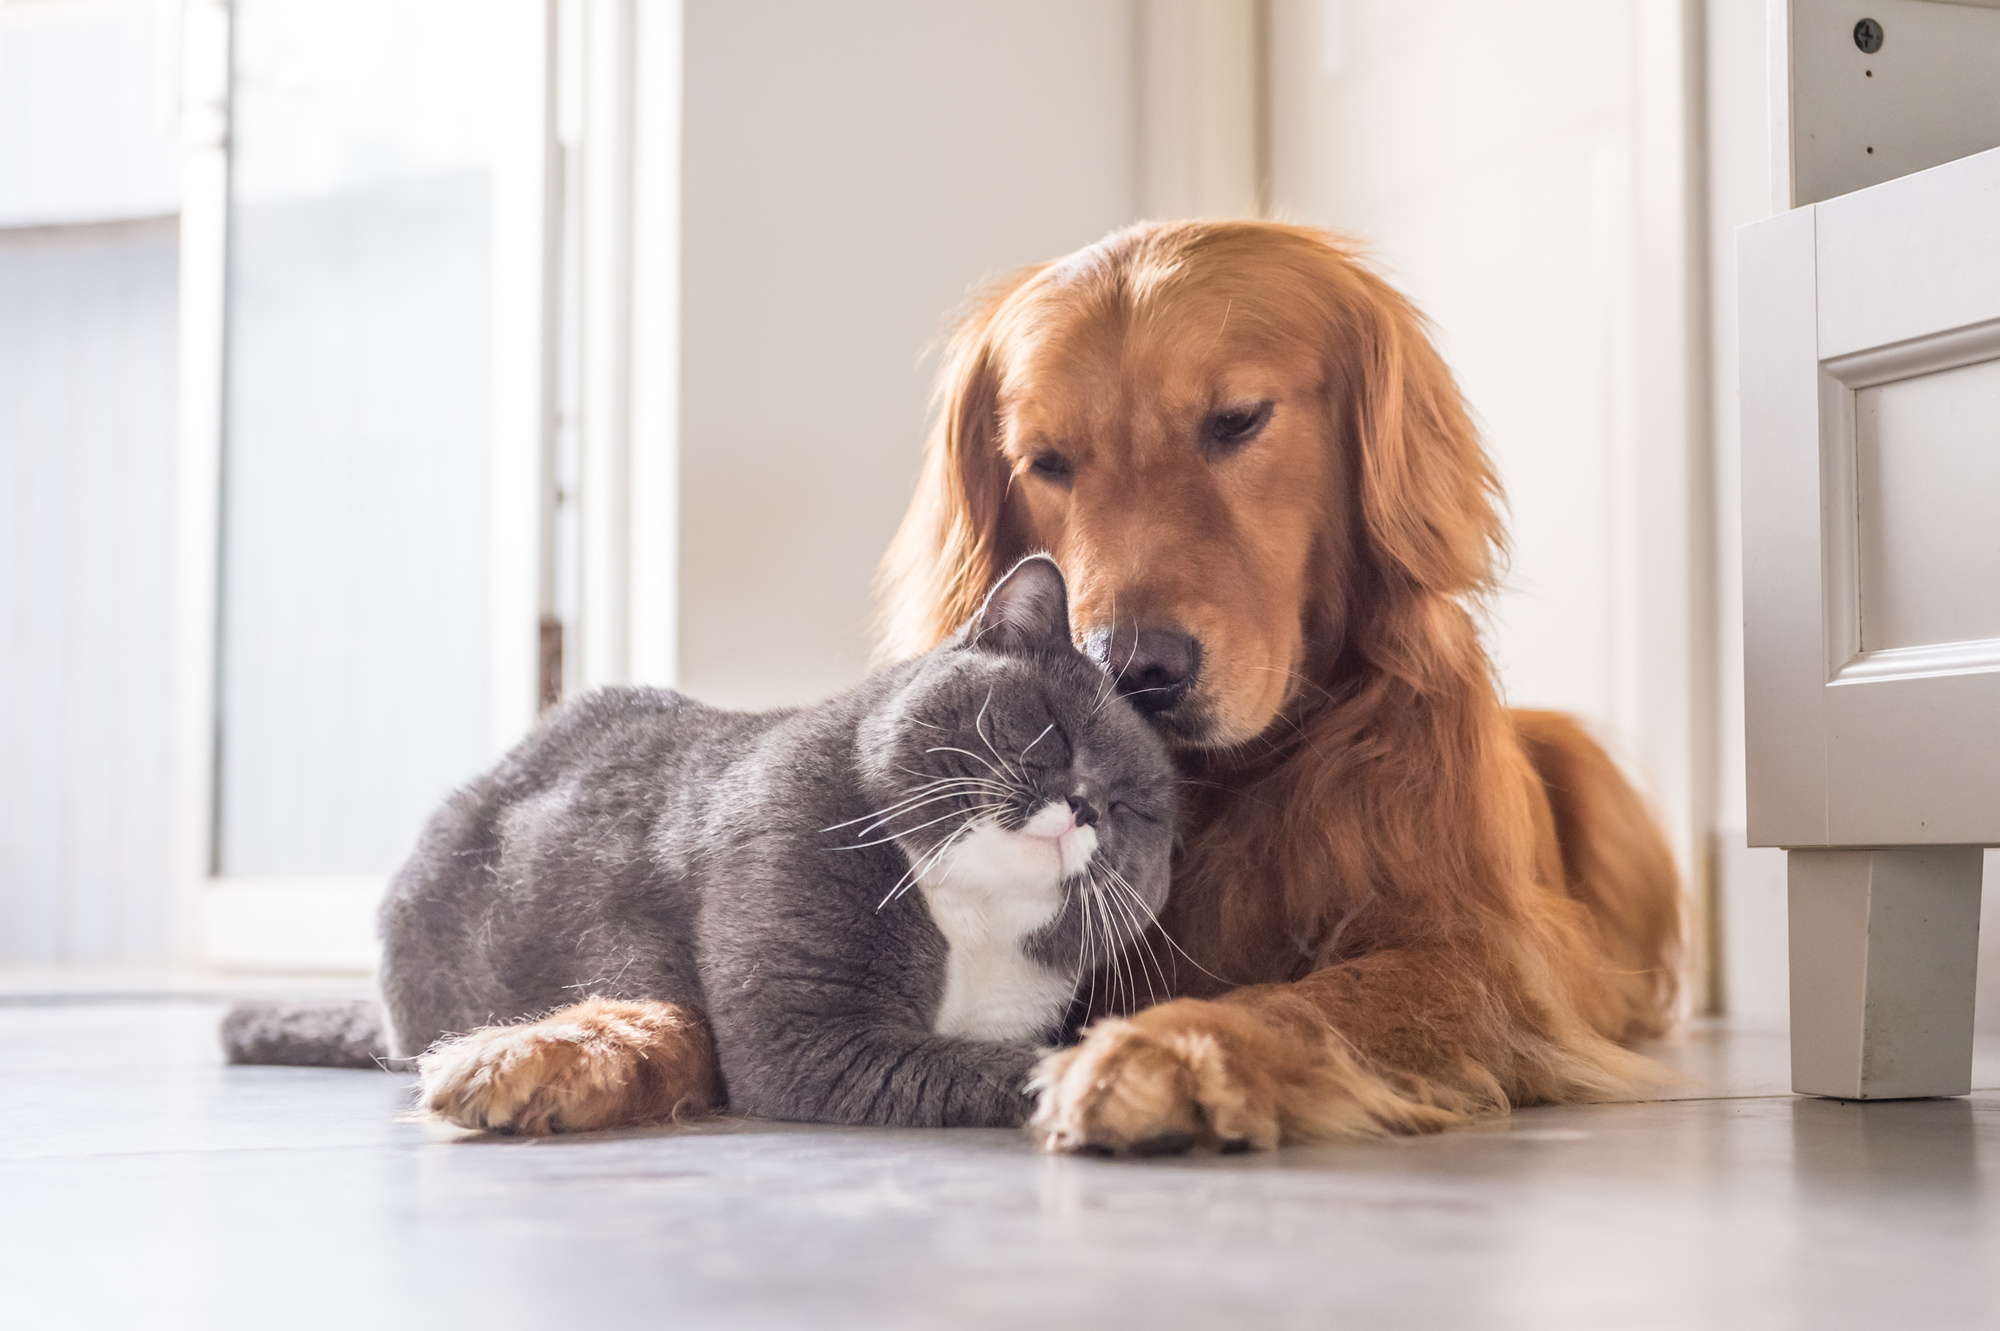 Playing Nice: Tips for Improving the Cat and Dog Relationship in Your Home